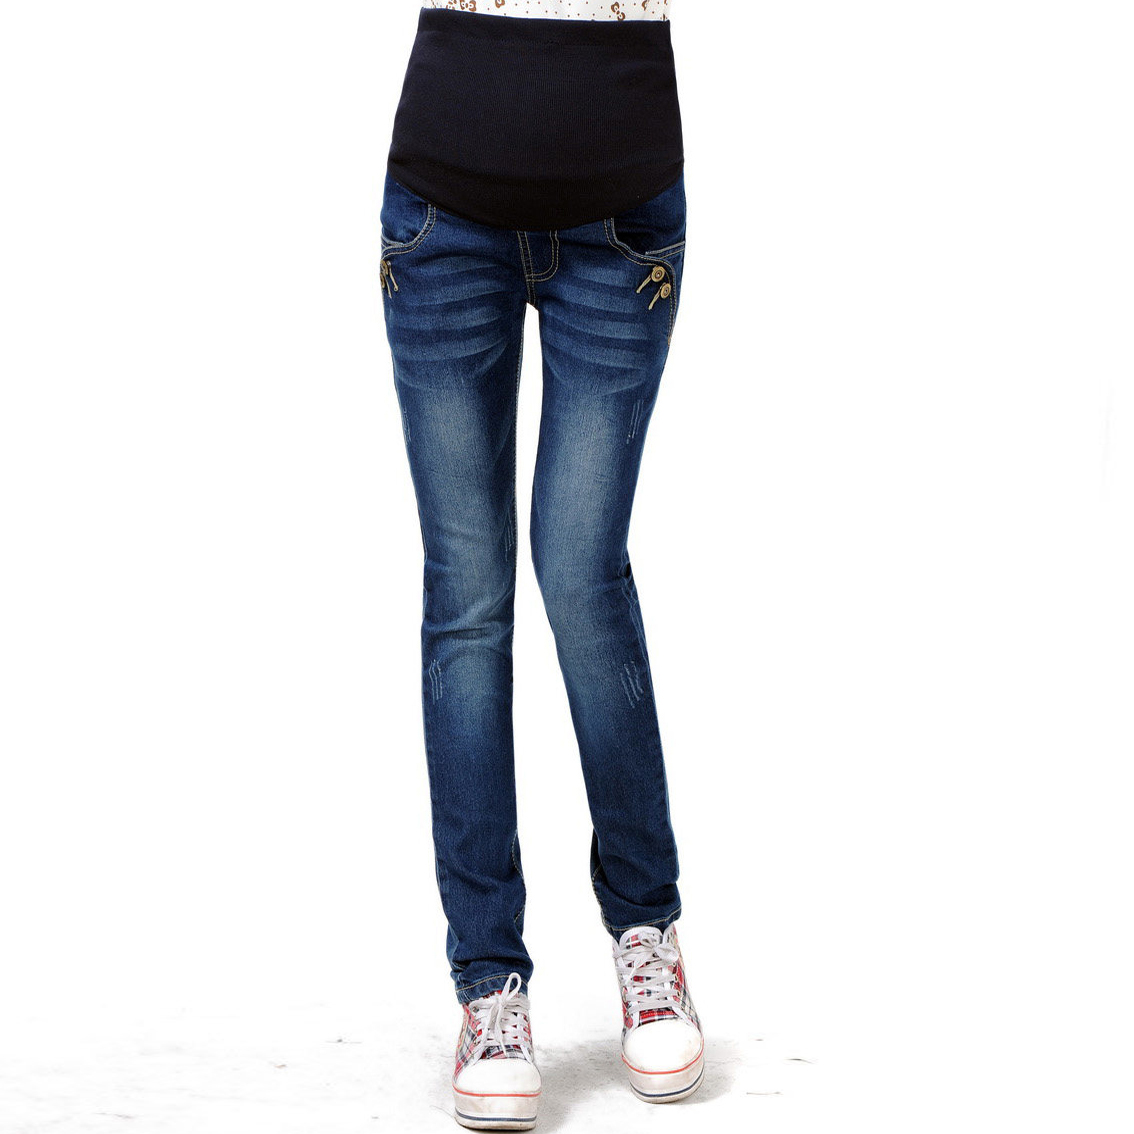 Elastic Waist Denim Cotton Maternity Jeans Pants for Pregnancy Clothes Pregnant font b Women b font